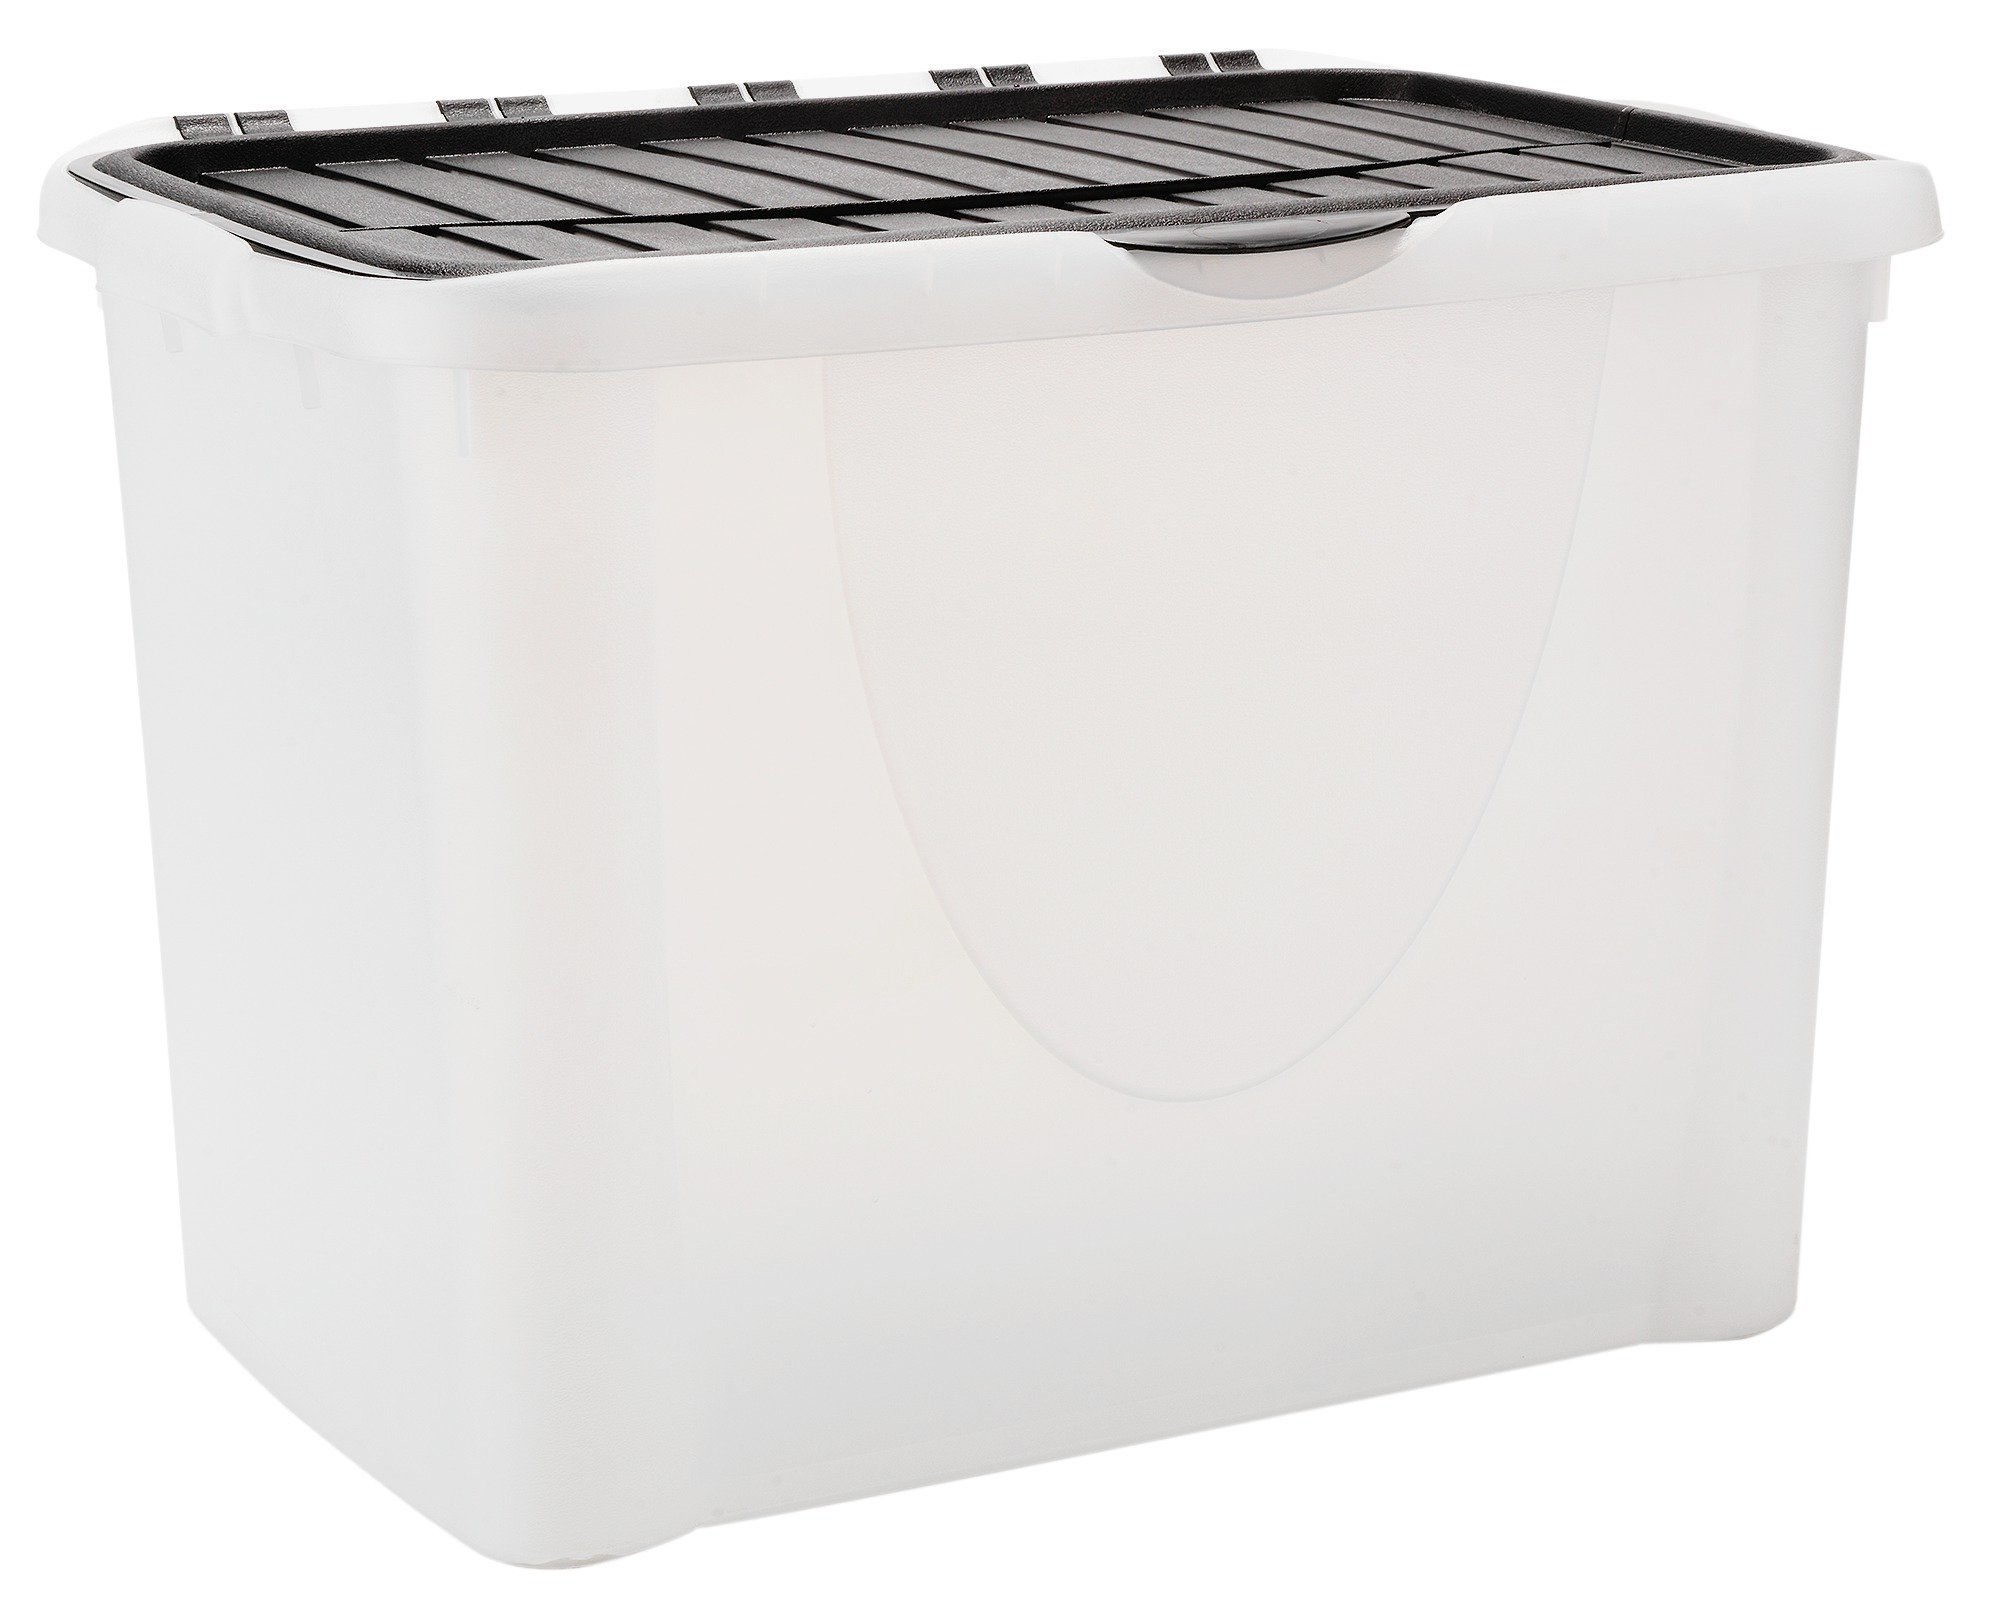 Tontarelli 70 Litre Plastic Storage Box with Flip Lid